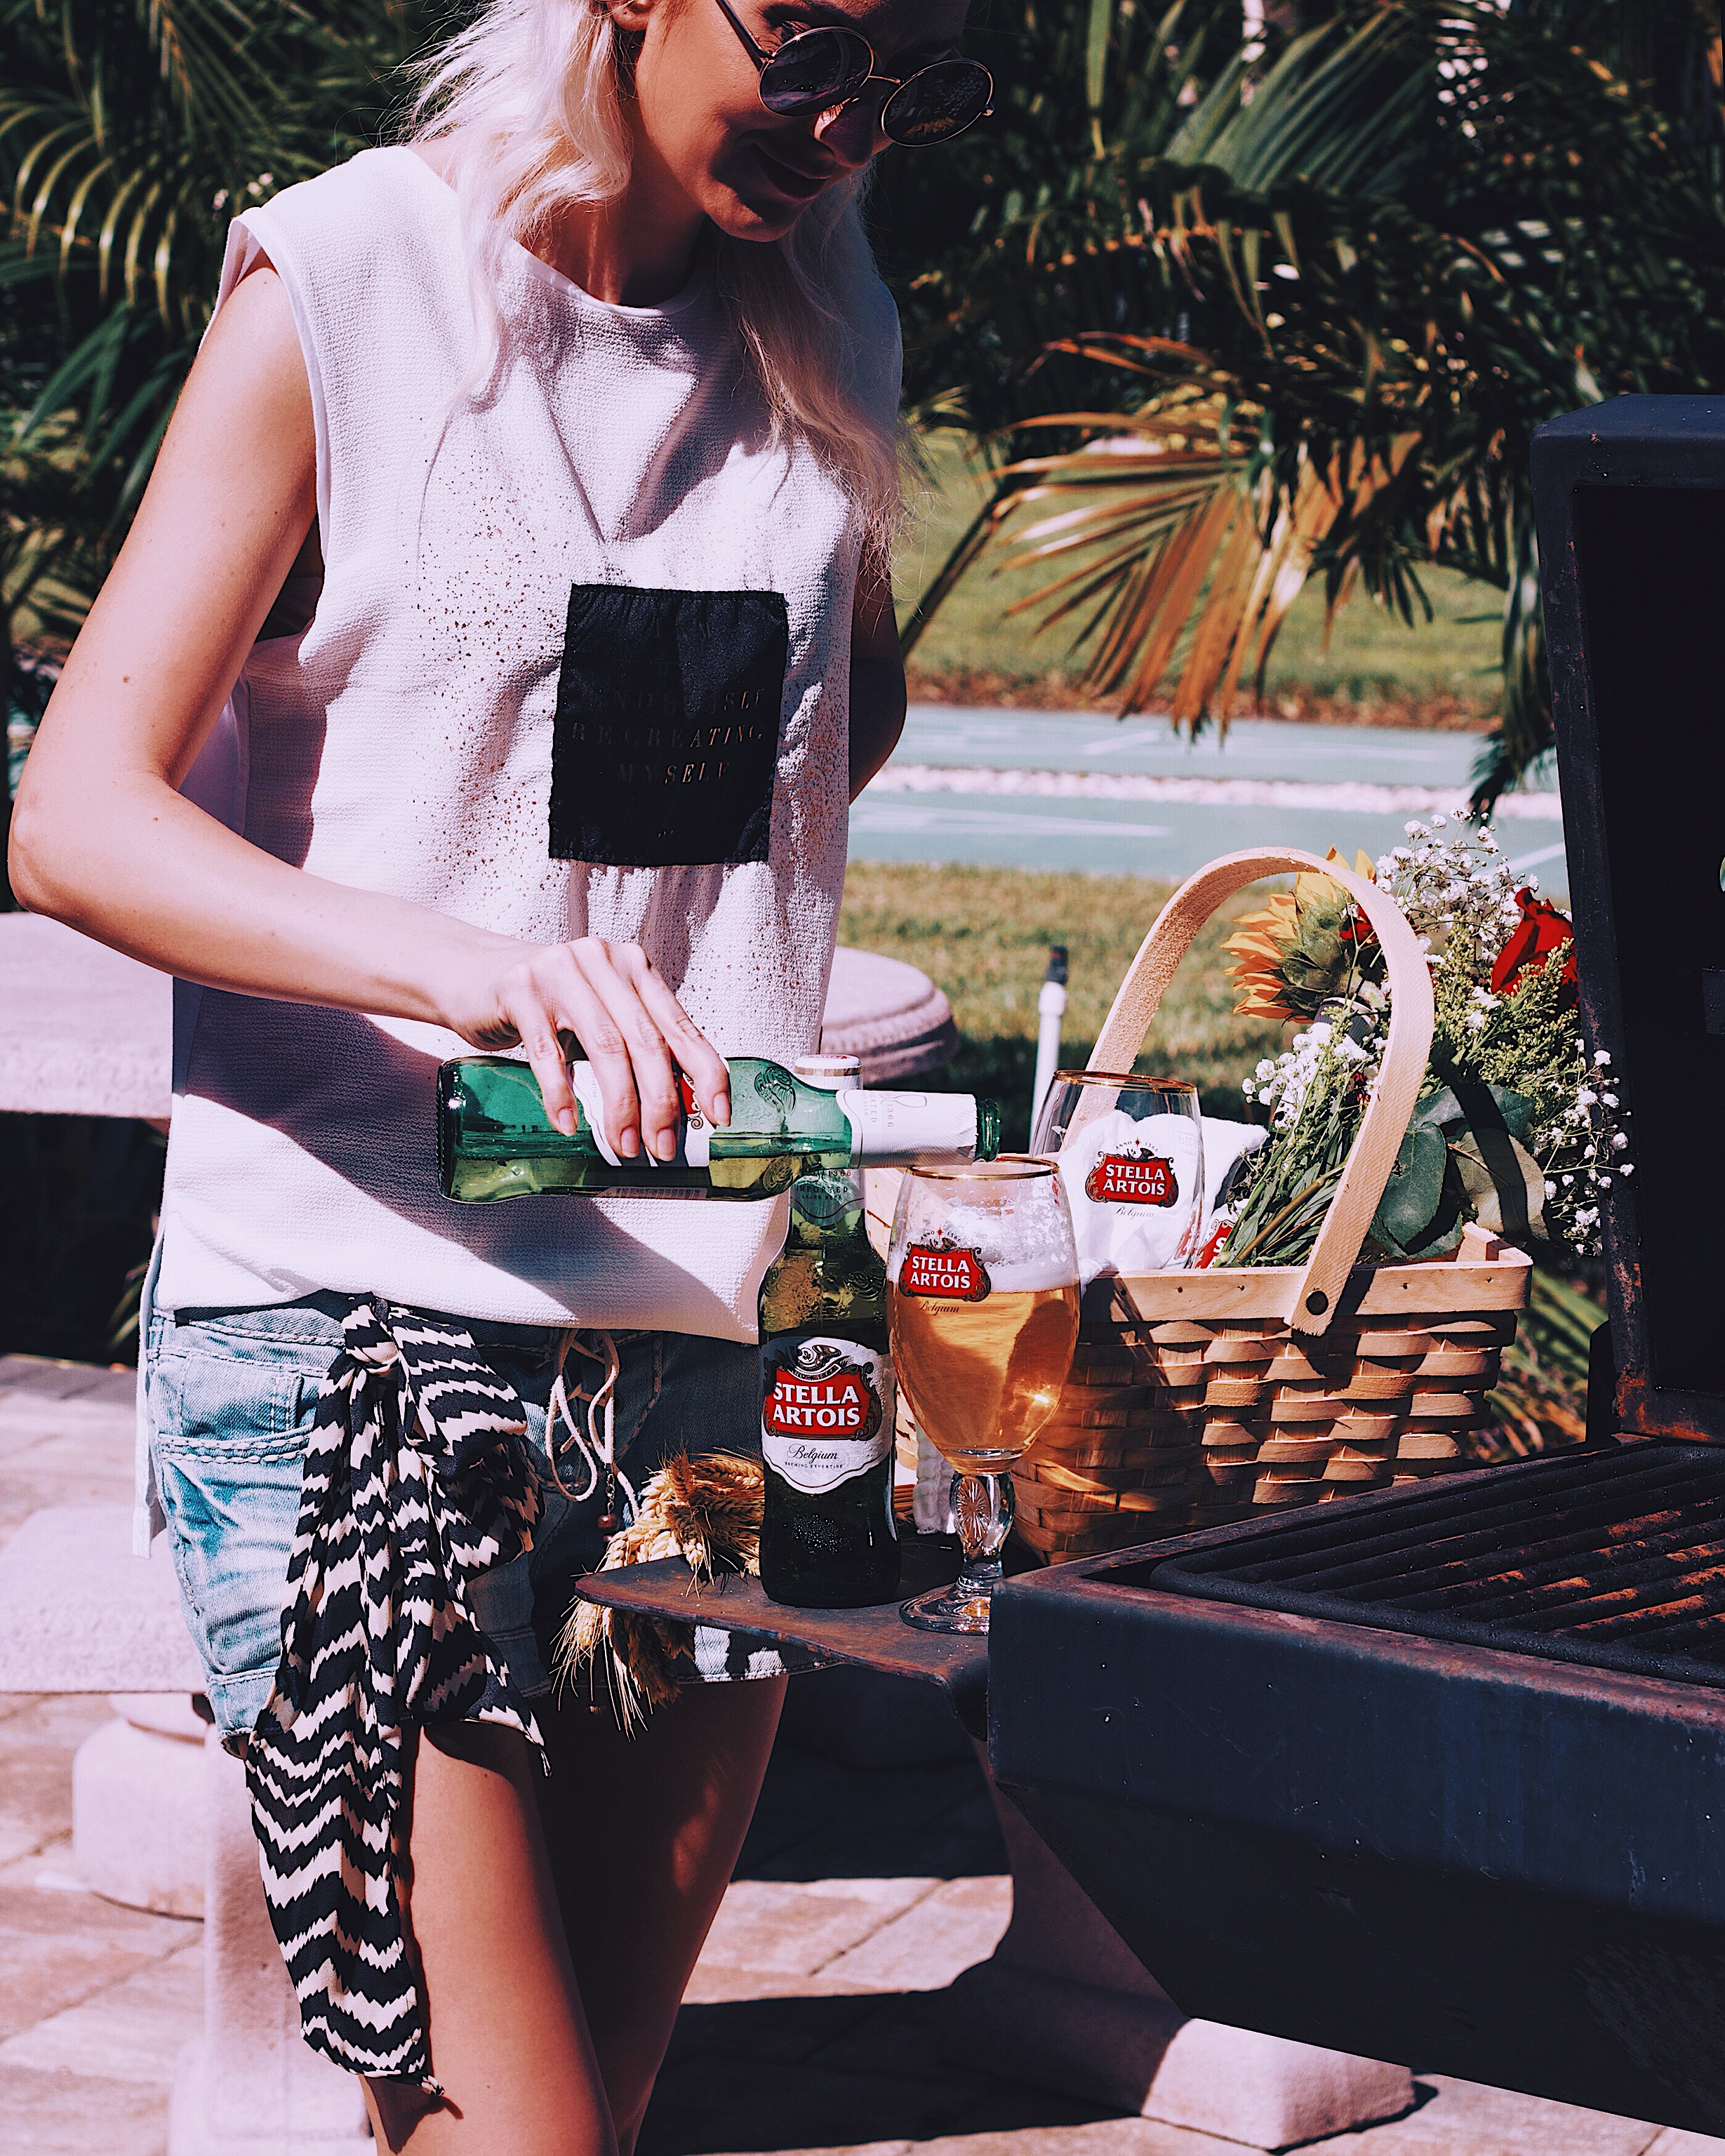 Cheers to the weekend with a cold glass of Stella Artois